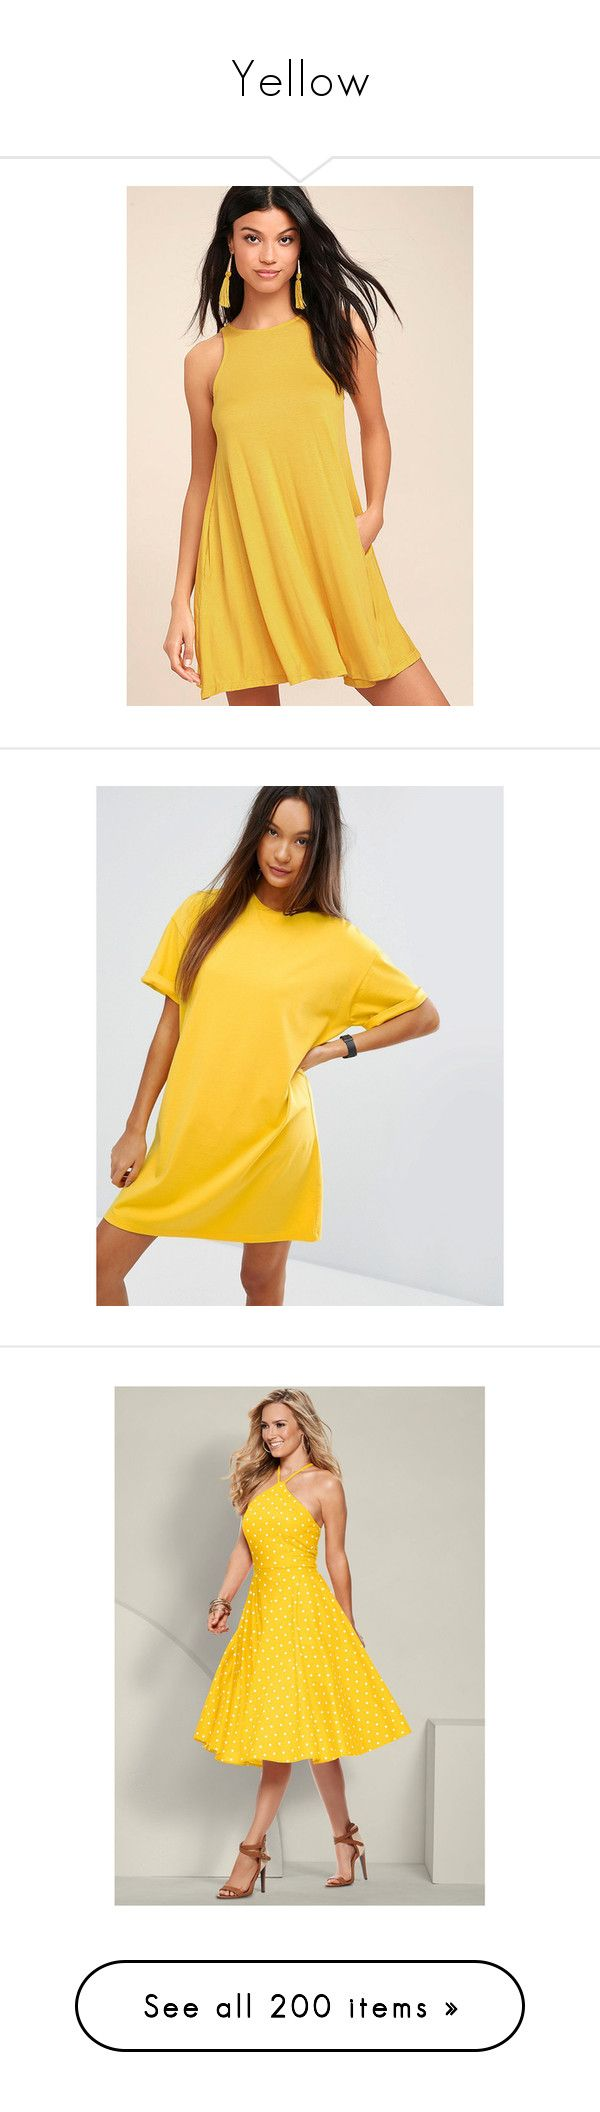 """Yellow"" by ultimateginger ❤ liked on Polyvore featuring dresses, yellow, round neck dress, jersey fabric dress, trapeze dress, bee print dress, sleeveless dress, night out dresses, party dresses and going out dresses"